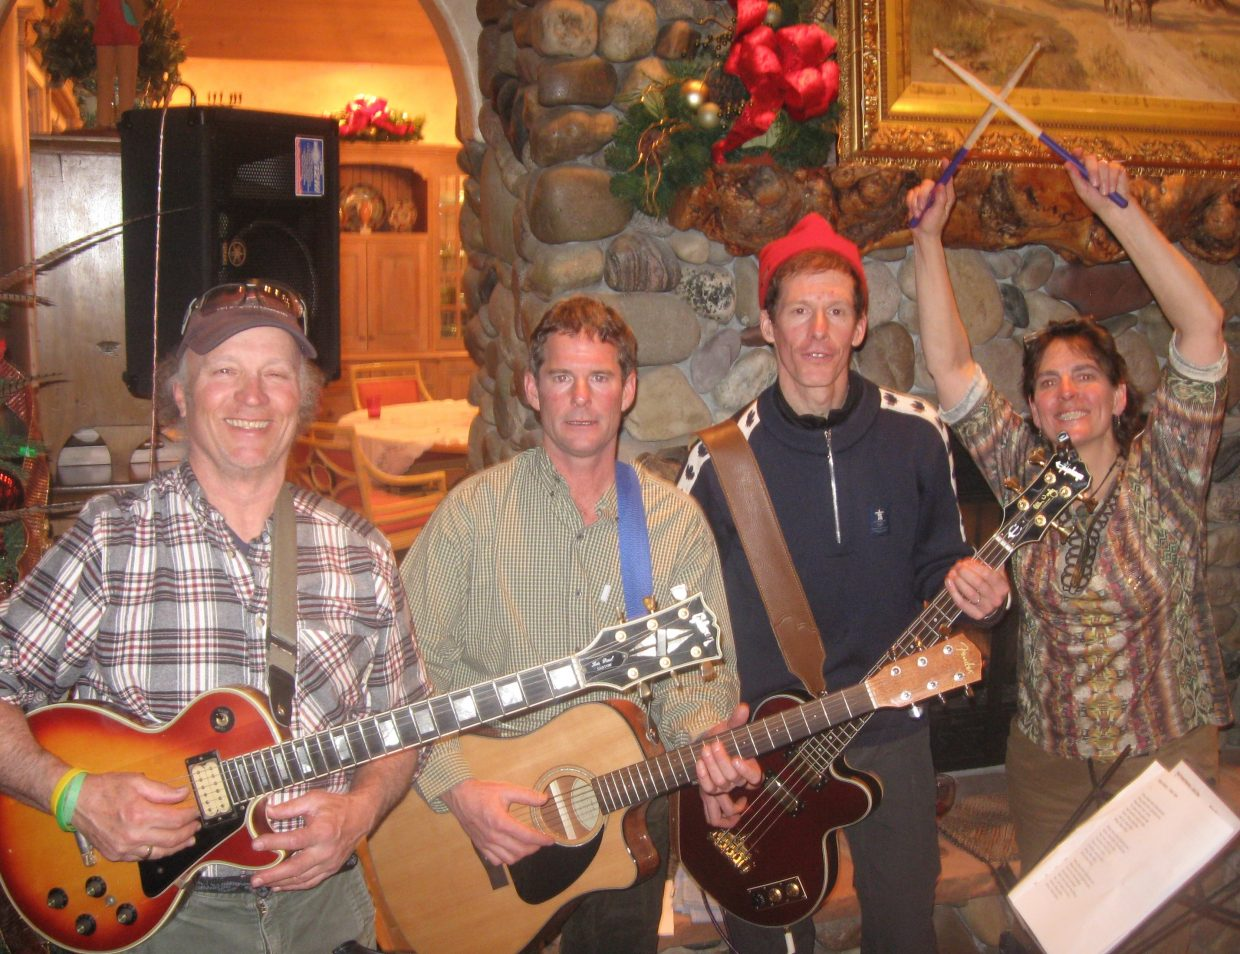 Barenaked Ladies bassist Jim Creeggan played an impromptu set with members of the local band El Kabong on New Year's in Steamboat Springs. From left, Pete Van De Carr, Eugene Buchanan, Creeggan and Gretchen Van De Carr. Not pictured are band members Cam Boyd, Tom Larson and Brad Williams.